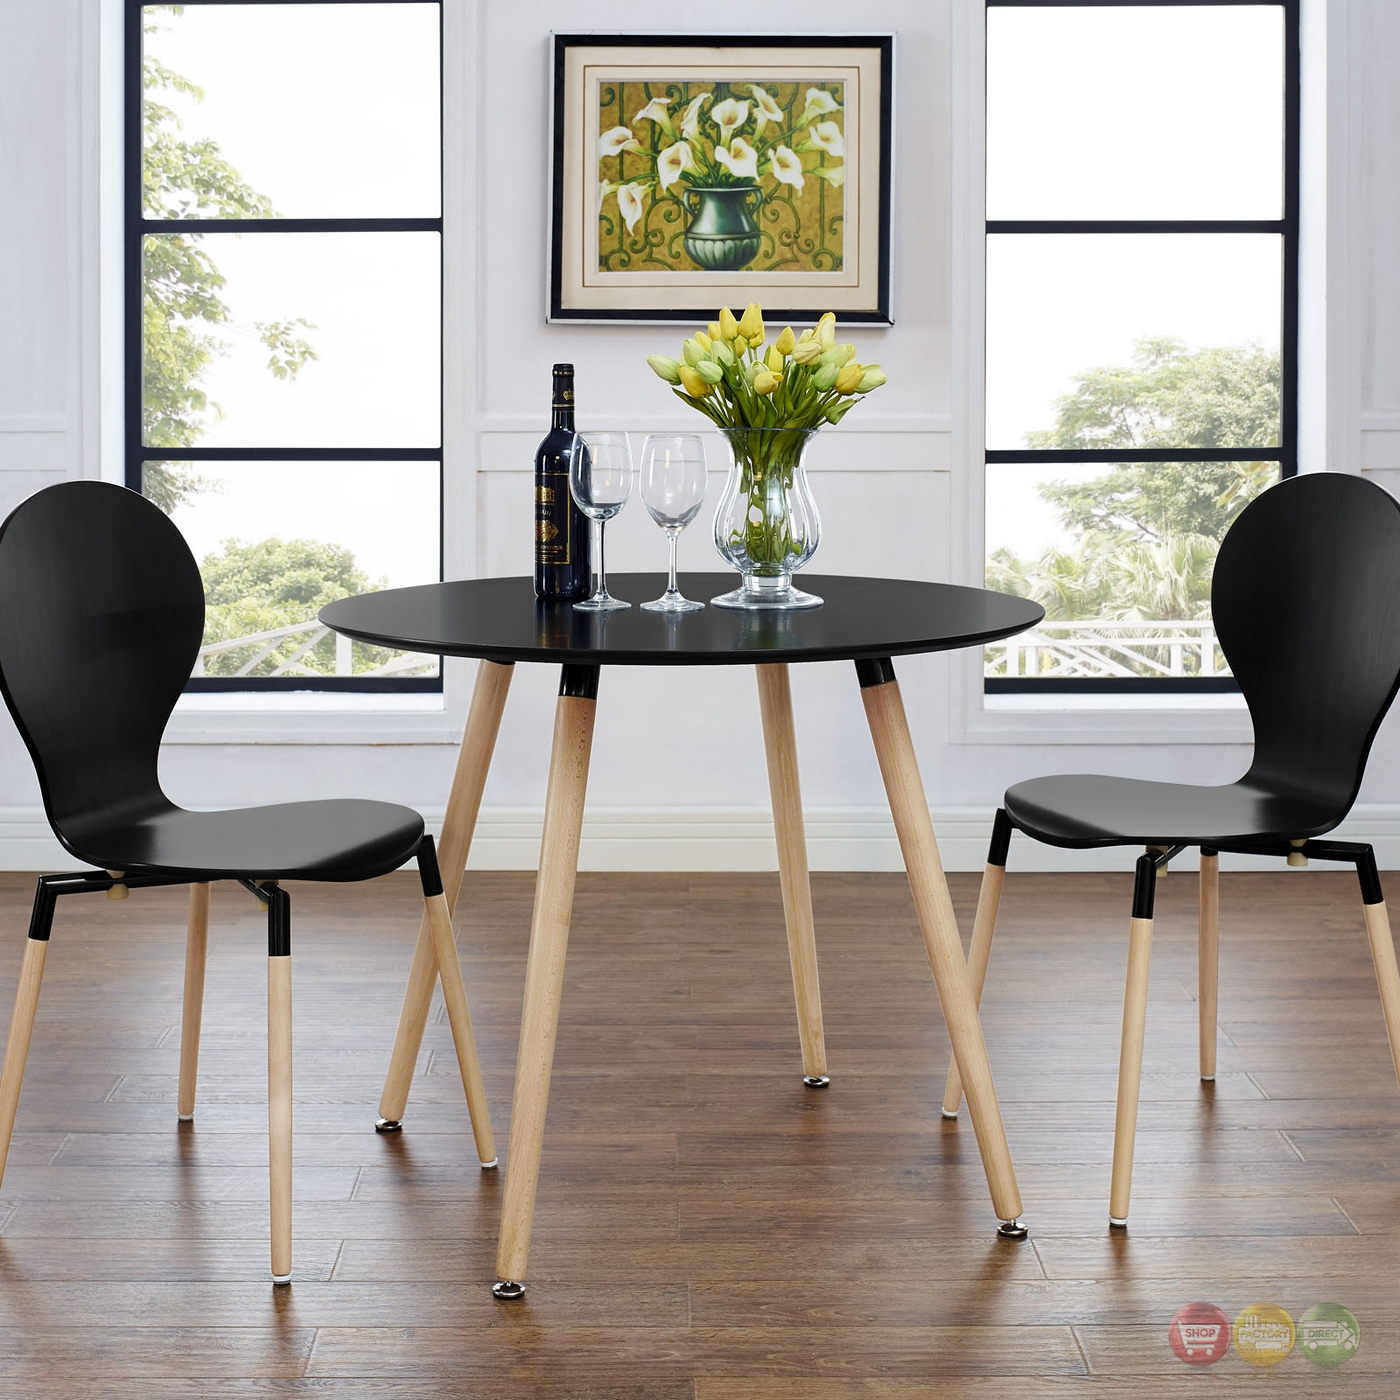 track contemporary 40 round wooden dining table black. Black Bedroom Furniture Sets. Home Design Ideas